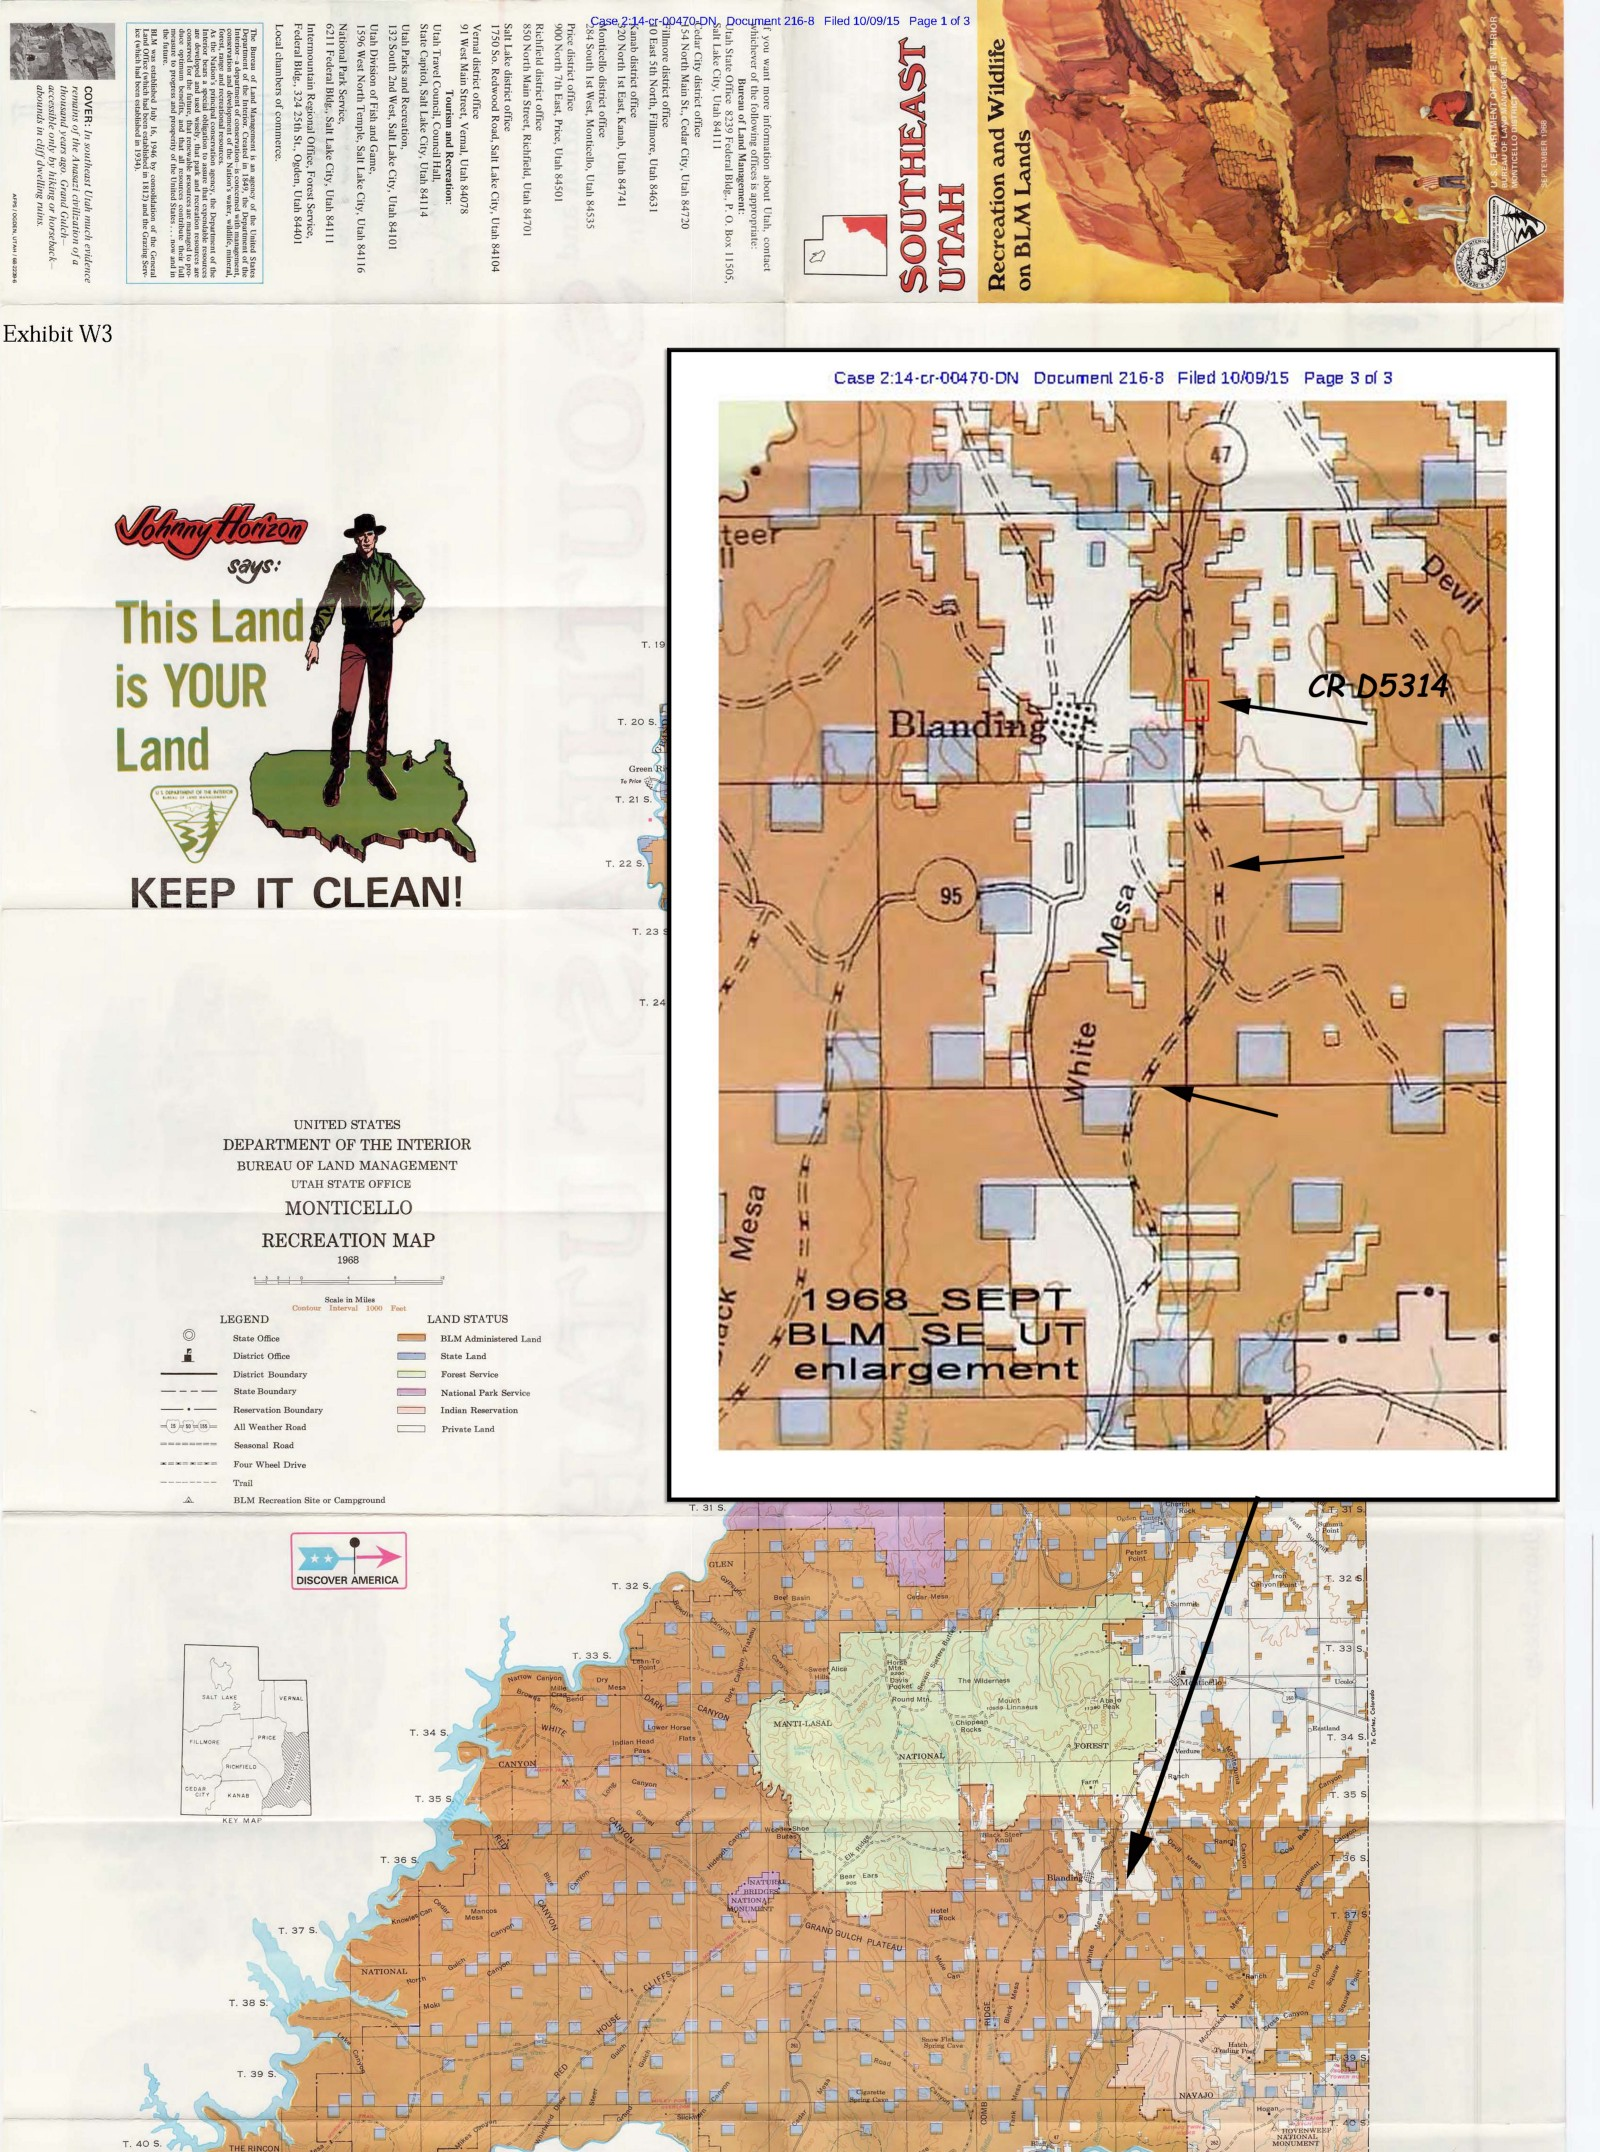 County Utah Map.The Federal Government Lied About Who Owns Recapture Canyon Road In